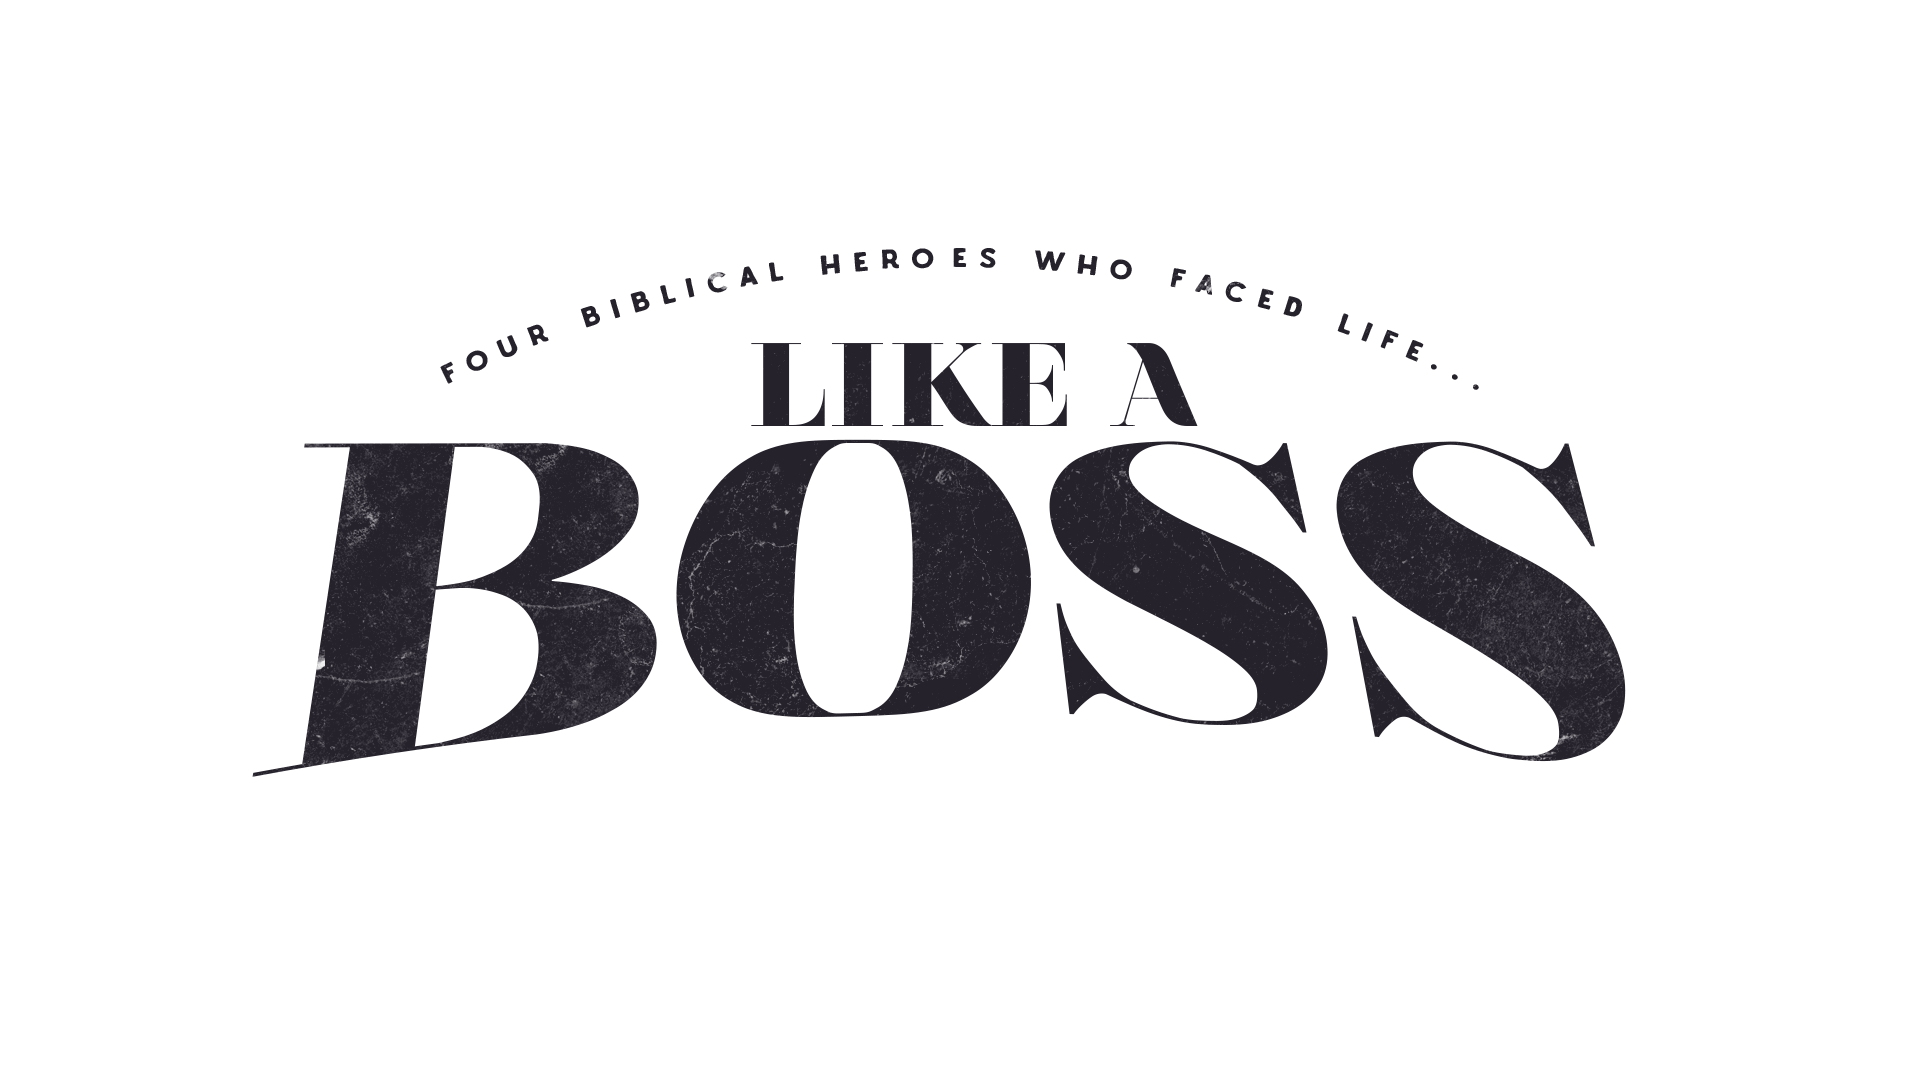 Graphics. Like a Boss PlusPng.com  - Like a Boss PNG